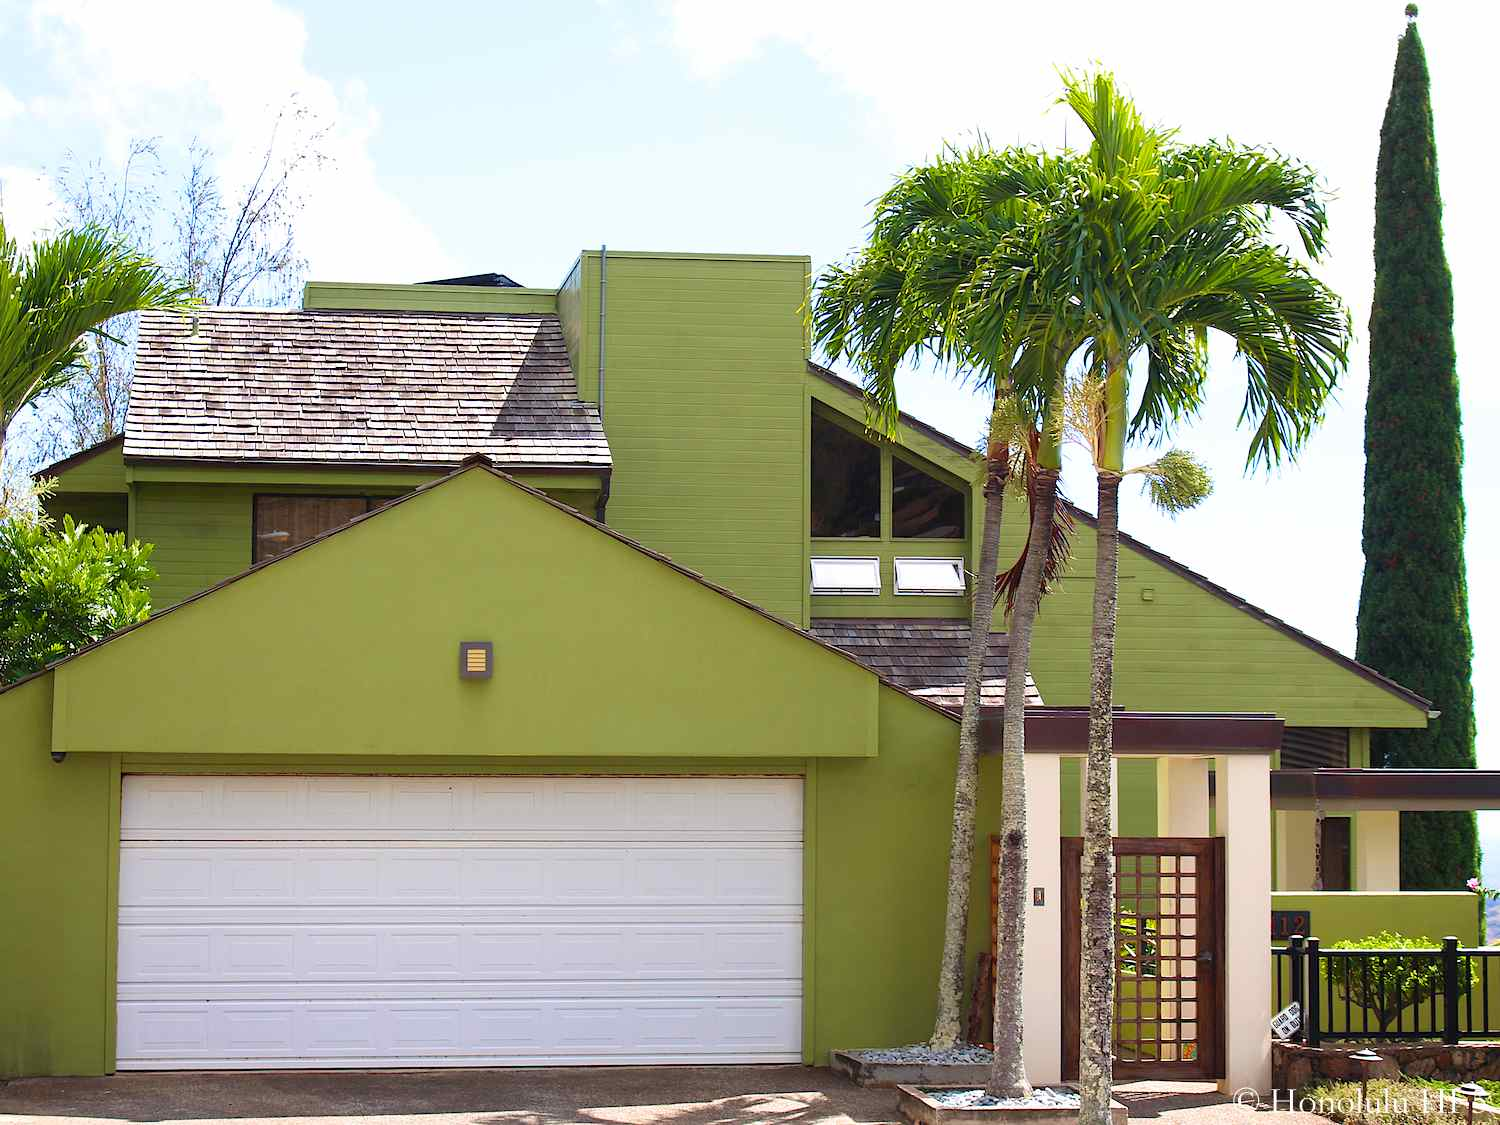 Green Mariners Valley Home in Hawaii Kai